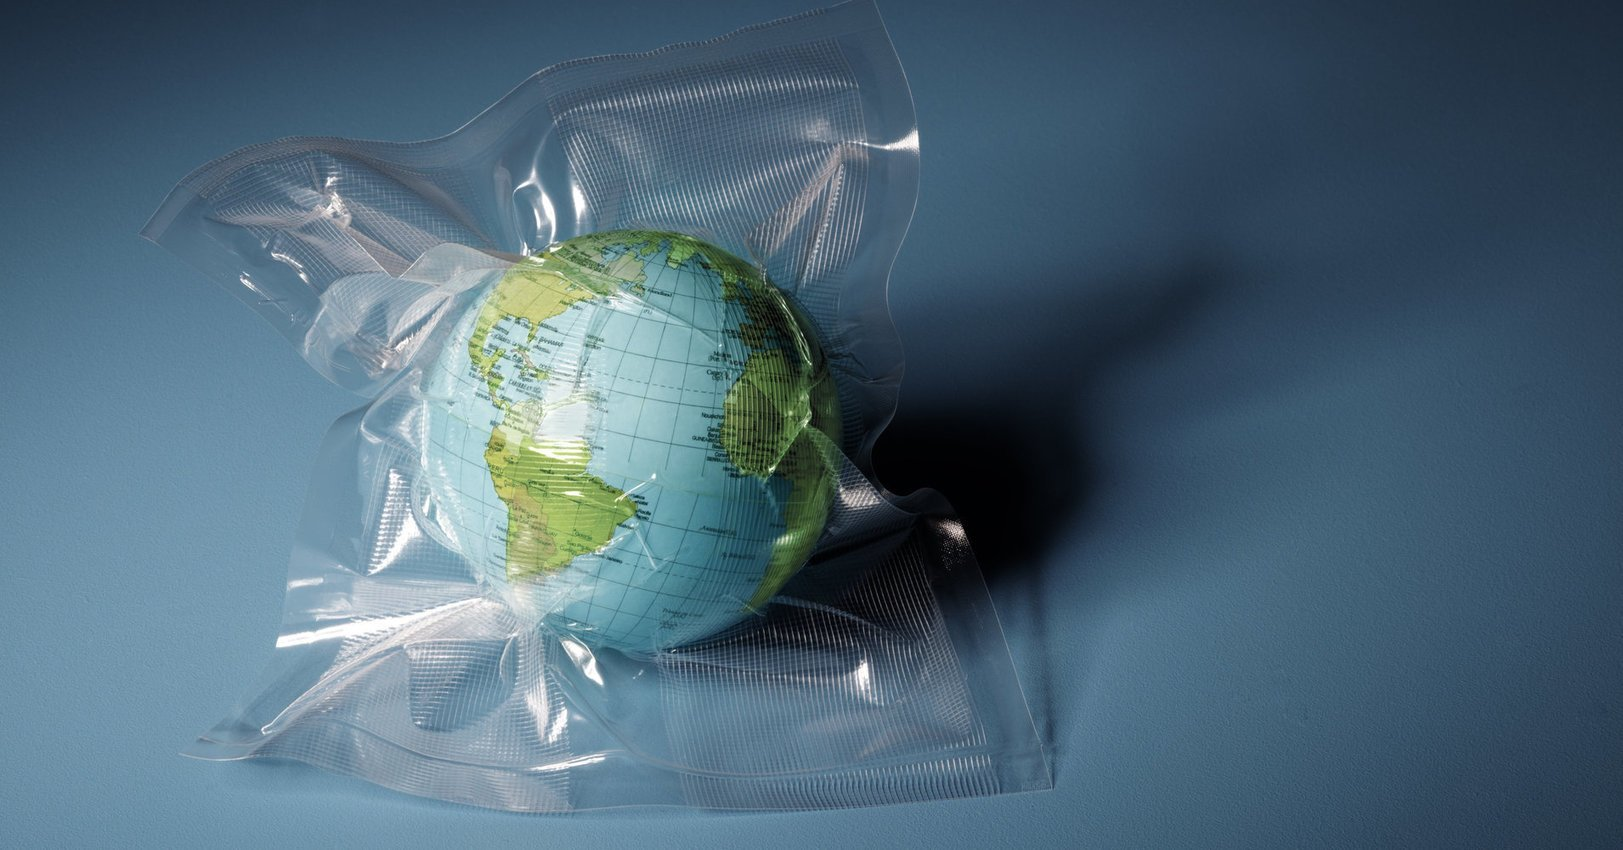 , We Live In A World Full Of Plastic, And People Are Sick Of It., The Circular Economy, The Circular Economy